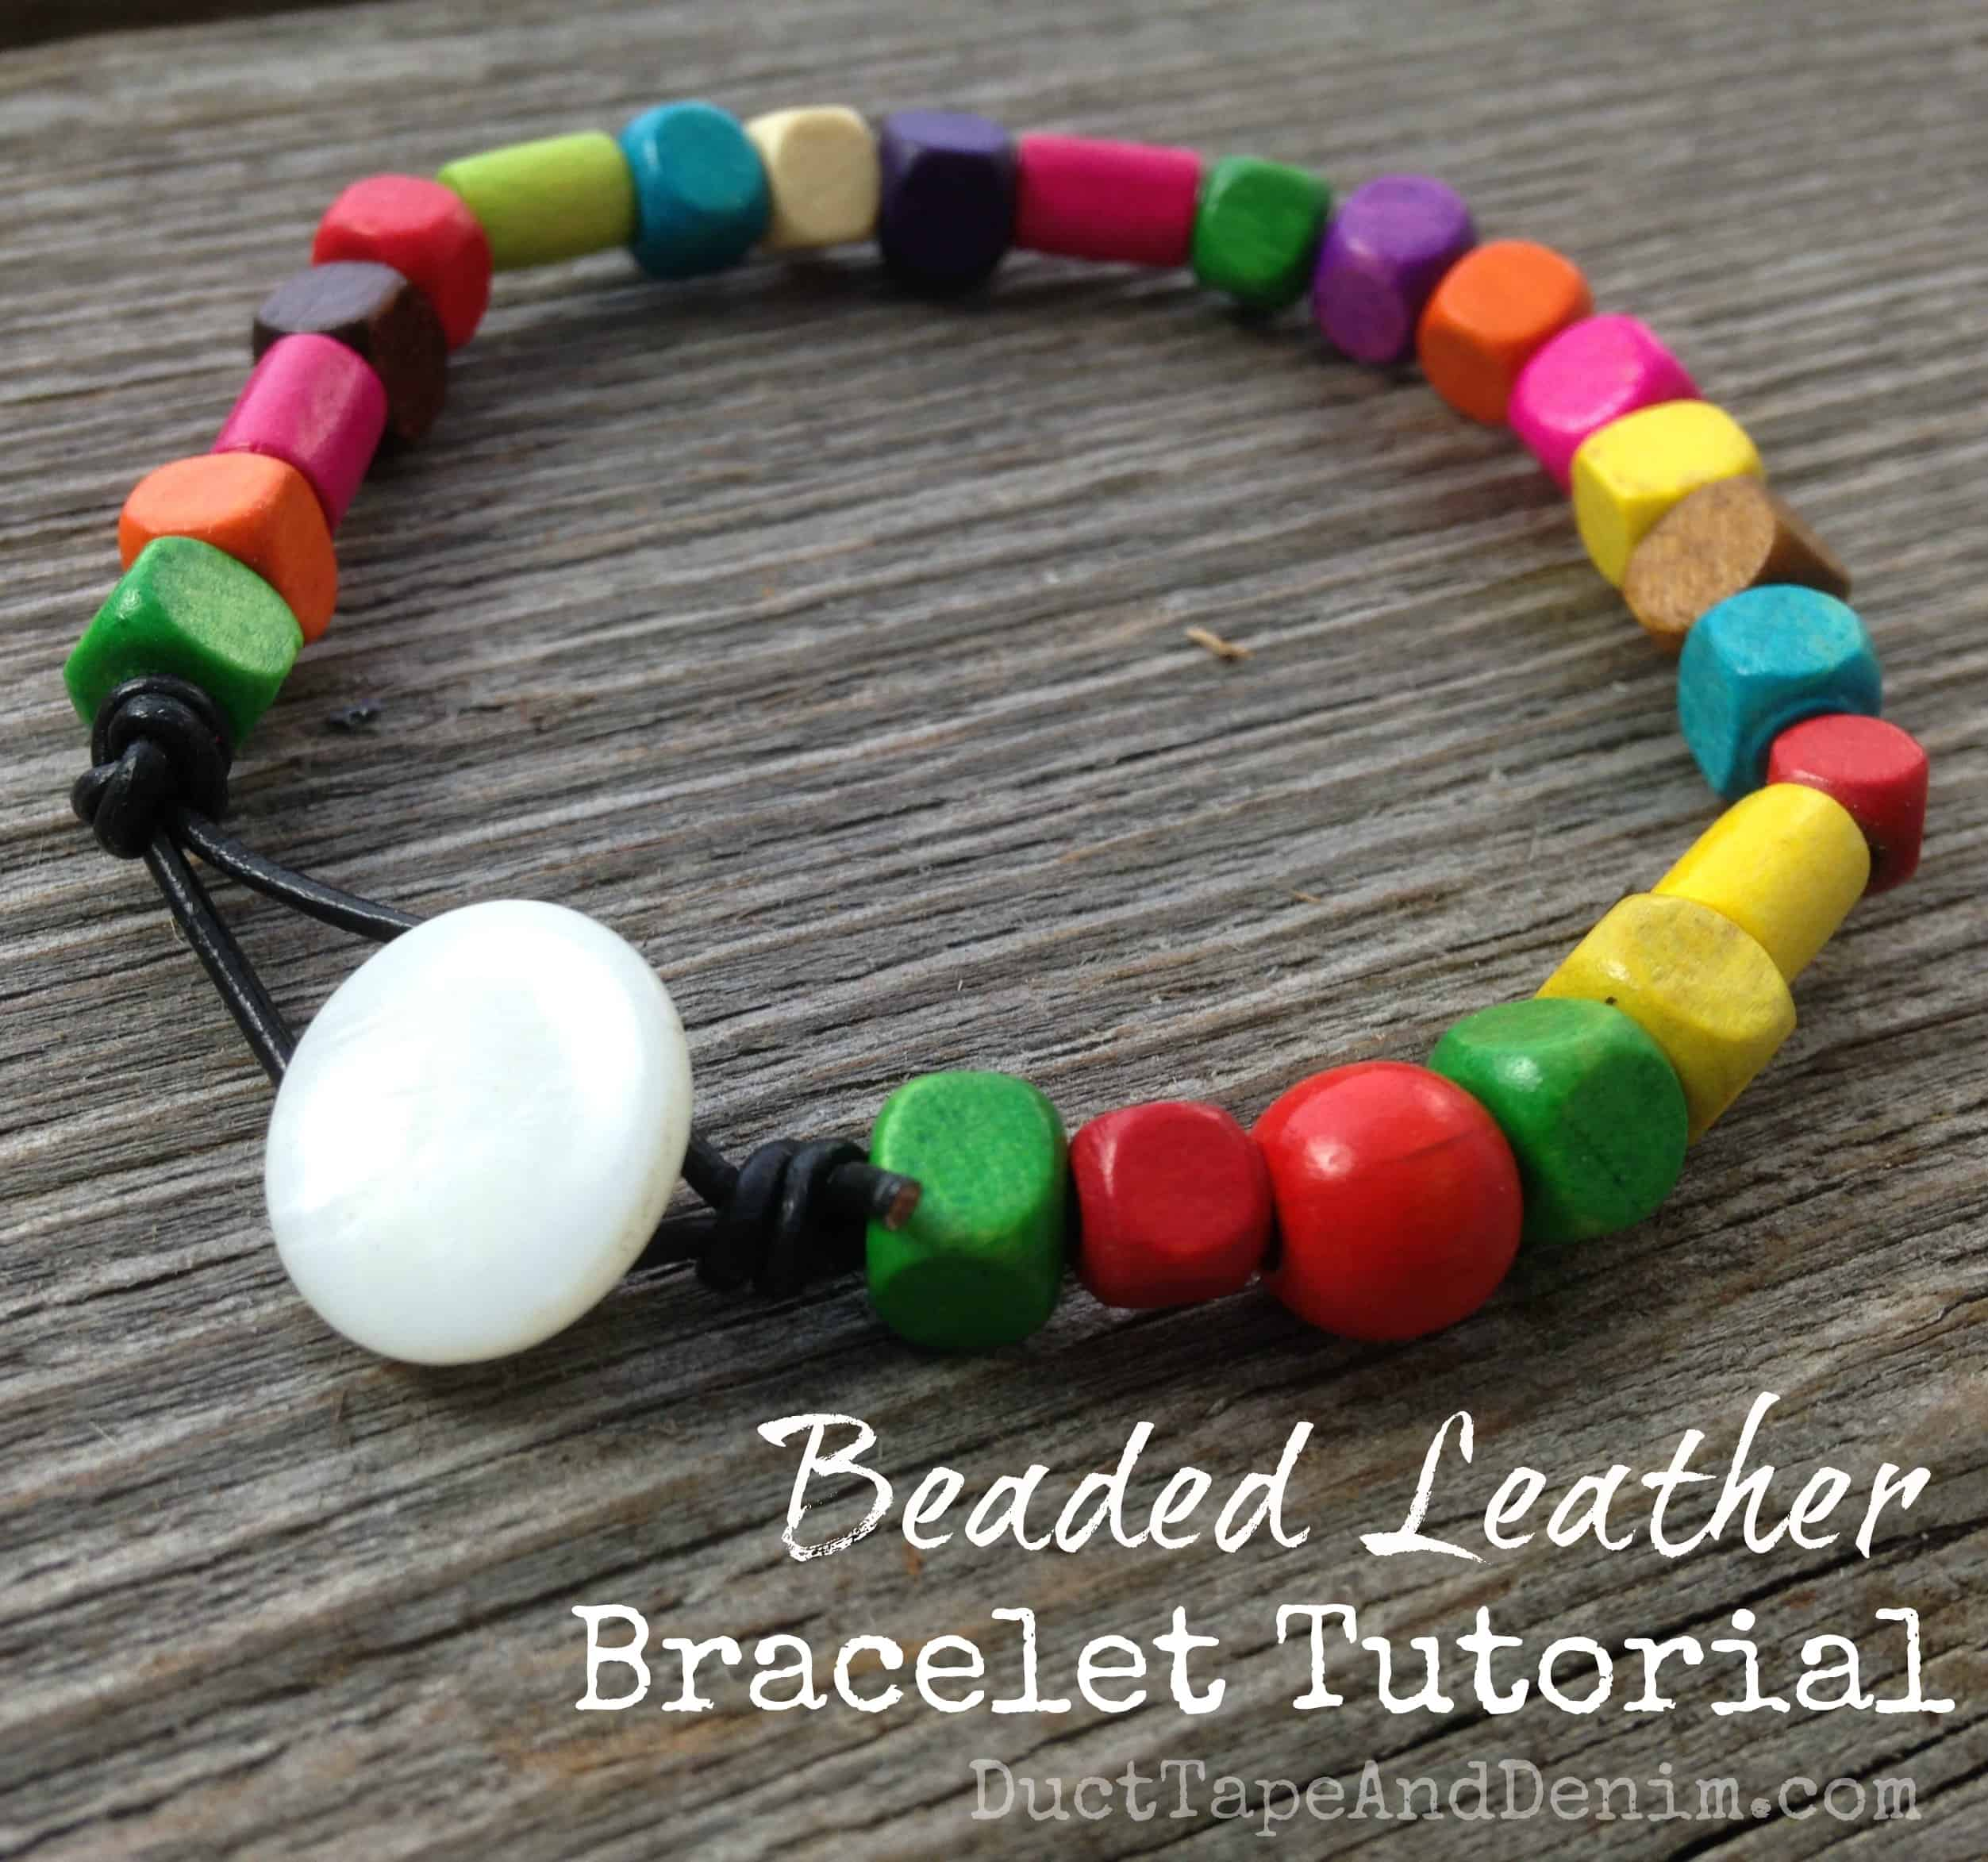 Beaded Leather Bracelet Tutorial DIY